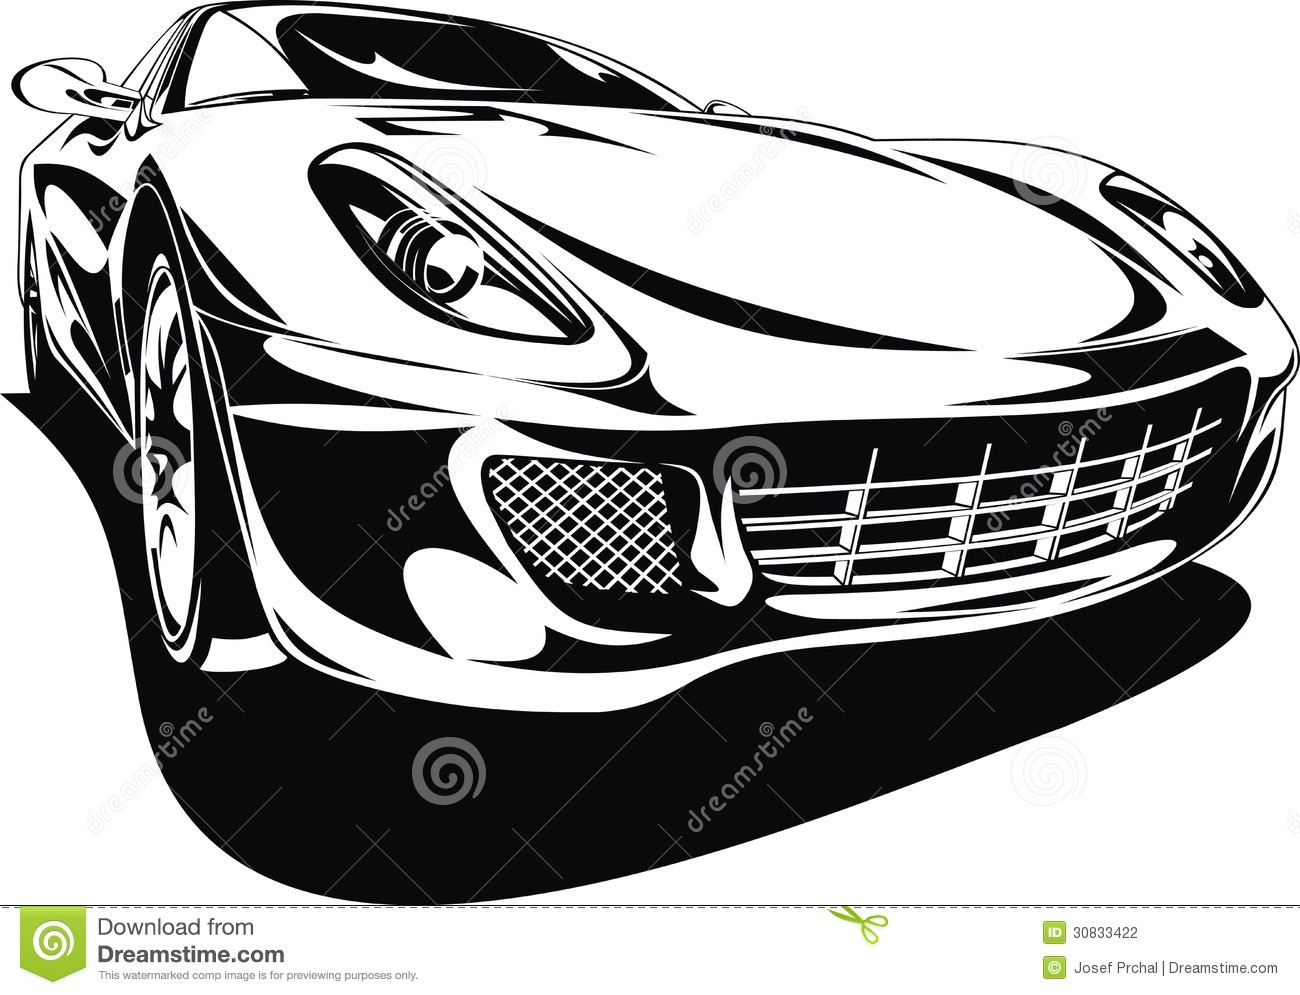 black sports car clipart - photo #30